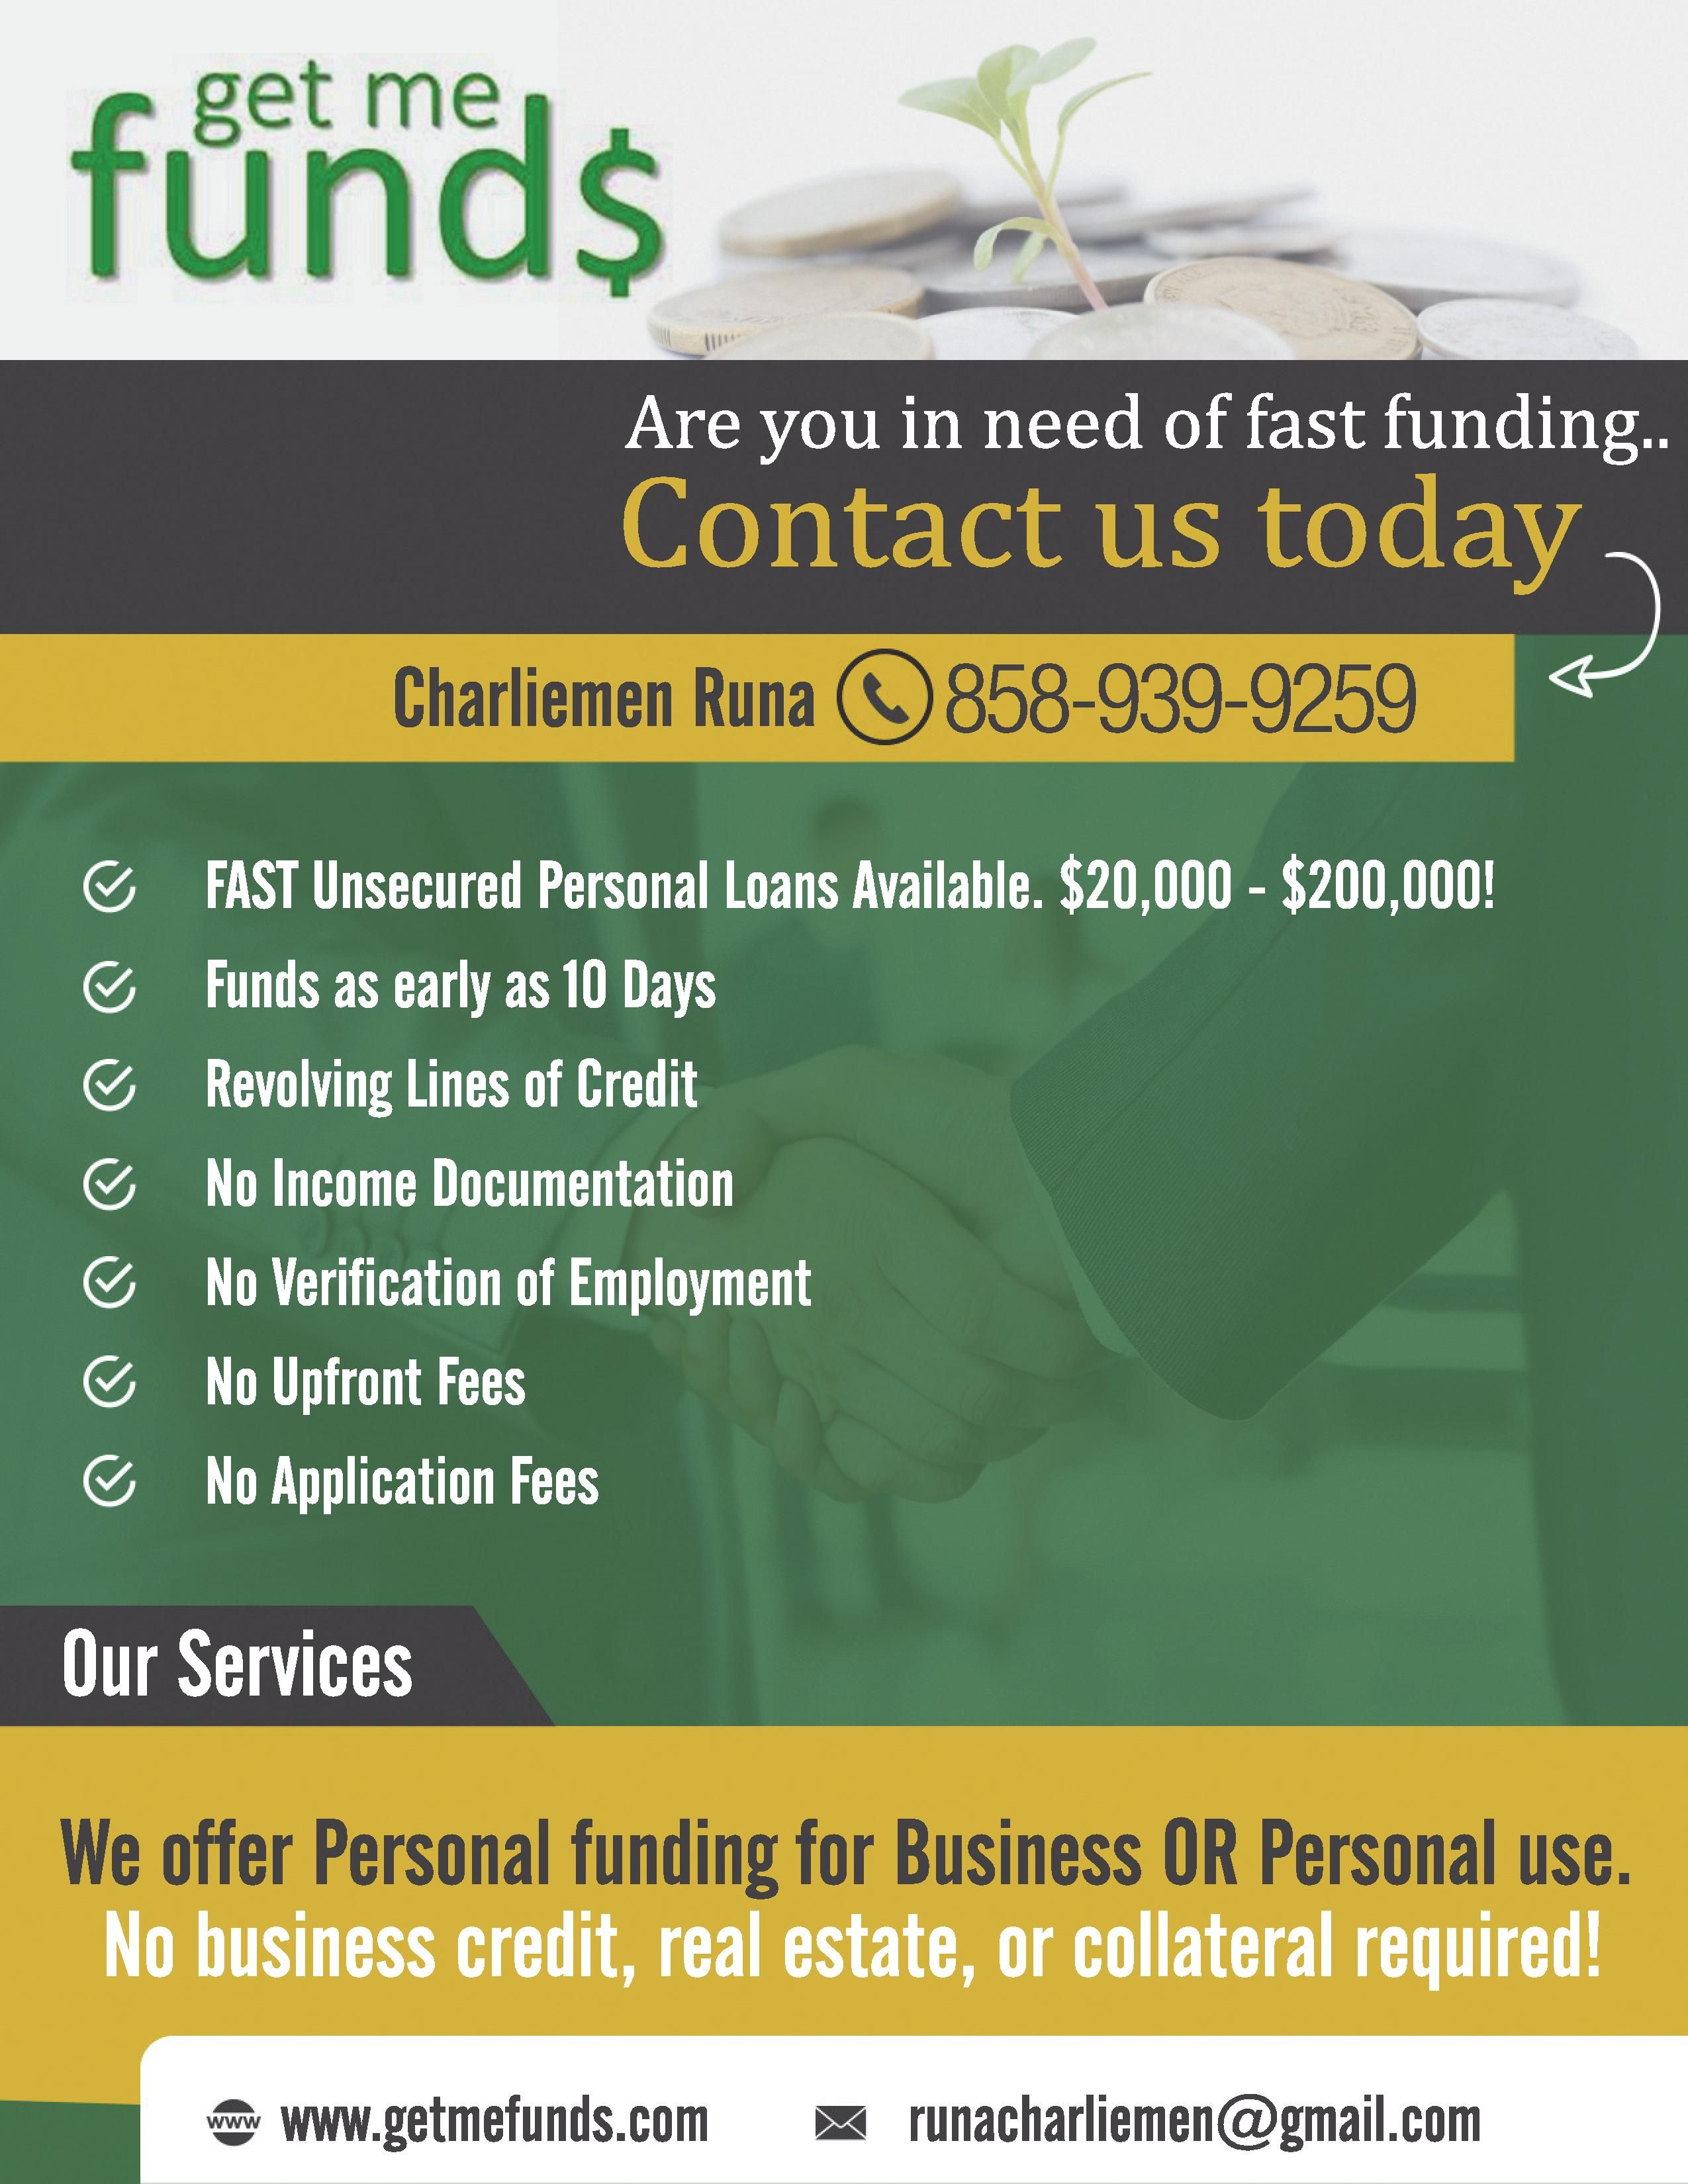 Loan Offer Requirements At Least 650 Credit Score No Income Docs No Employment Verification No Bank Statement And No It Line Of Credit Personal Loans Loan